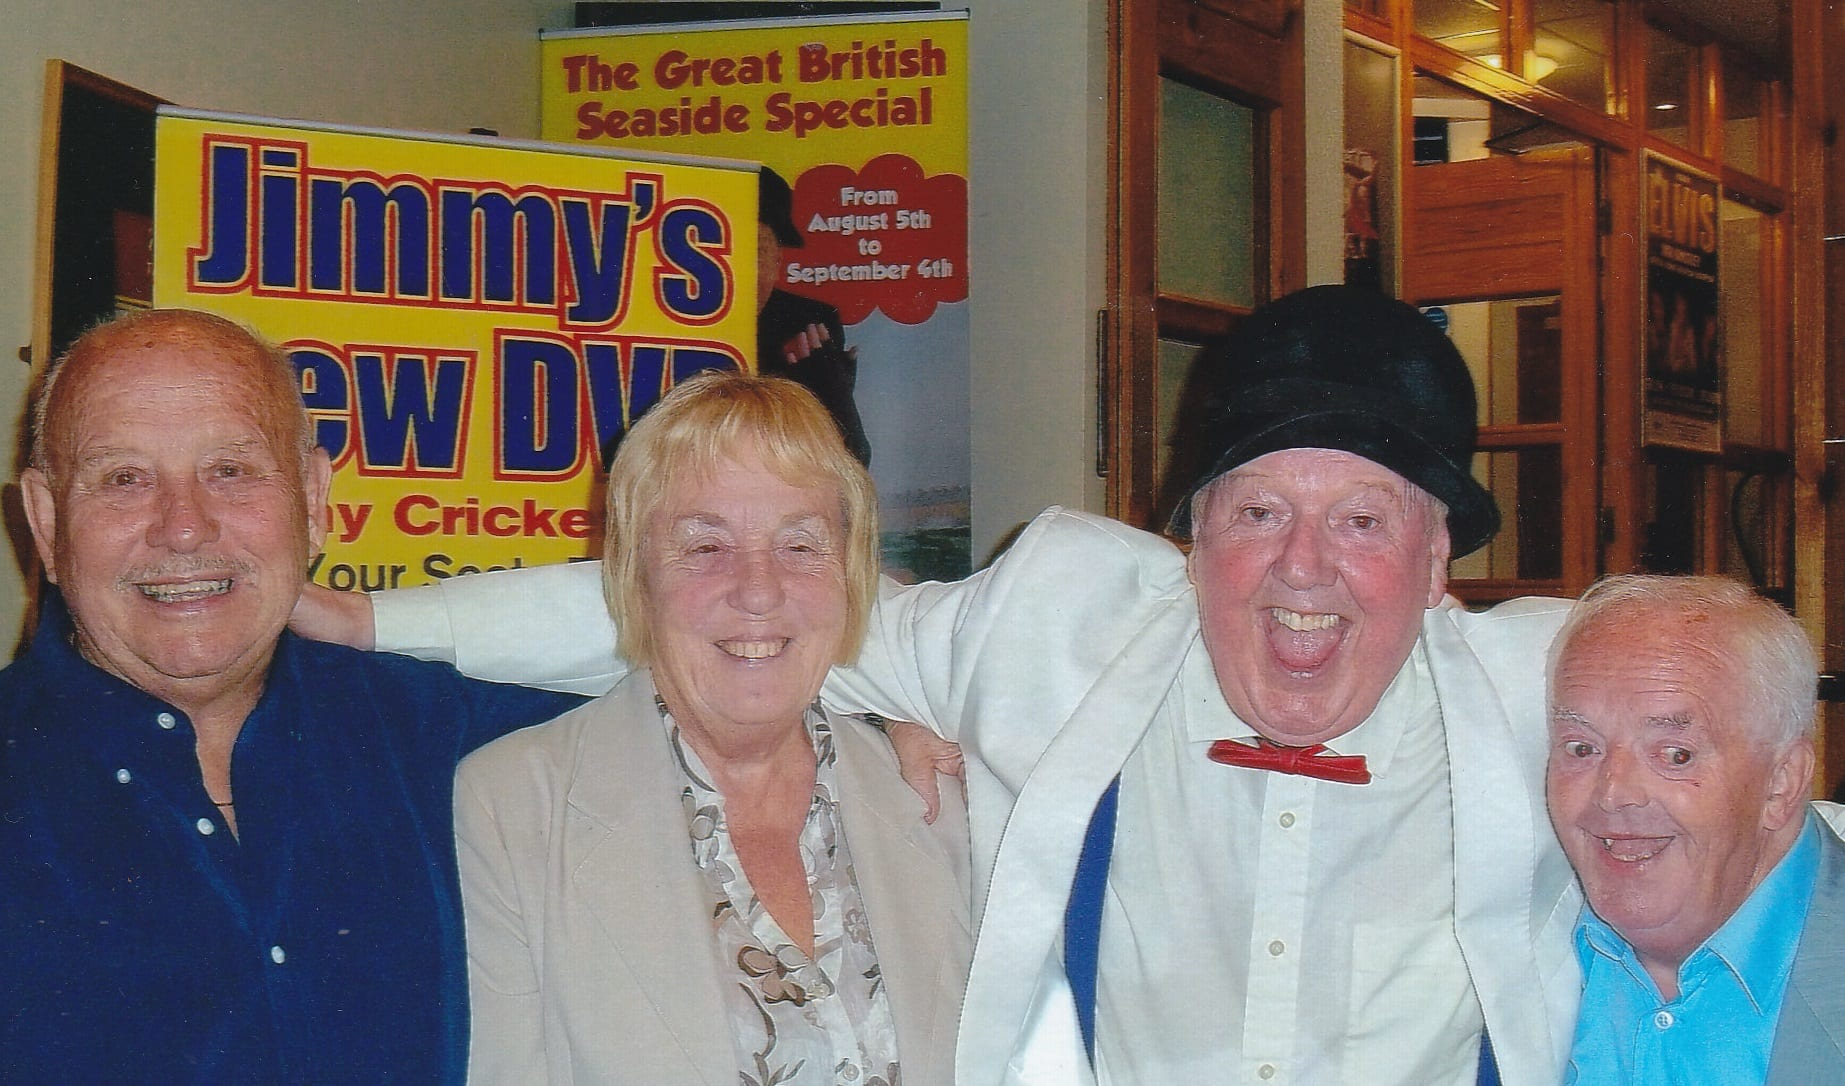 Frankie Whittle and Ernie Shrimp and his wife all went to watch Jimmy's show